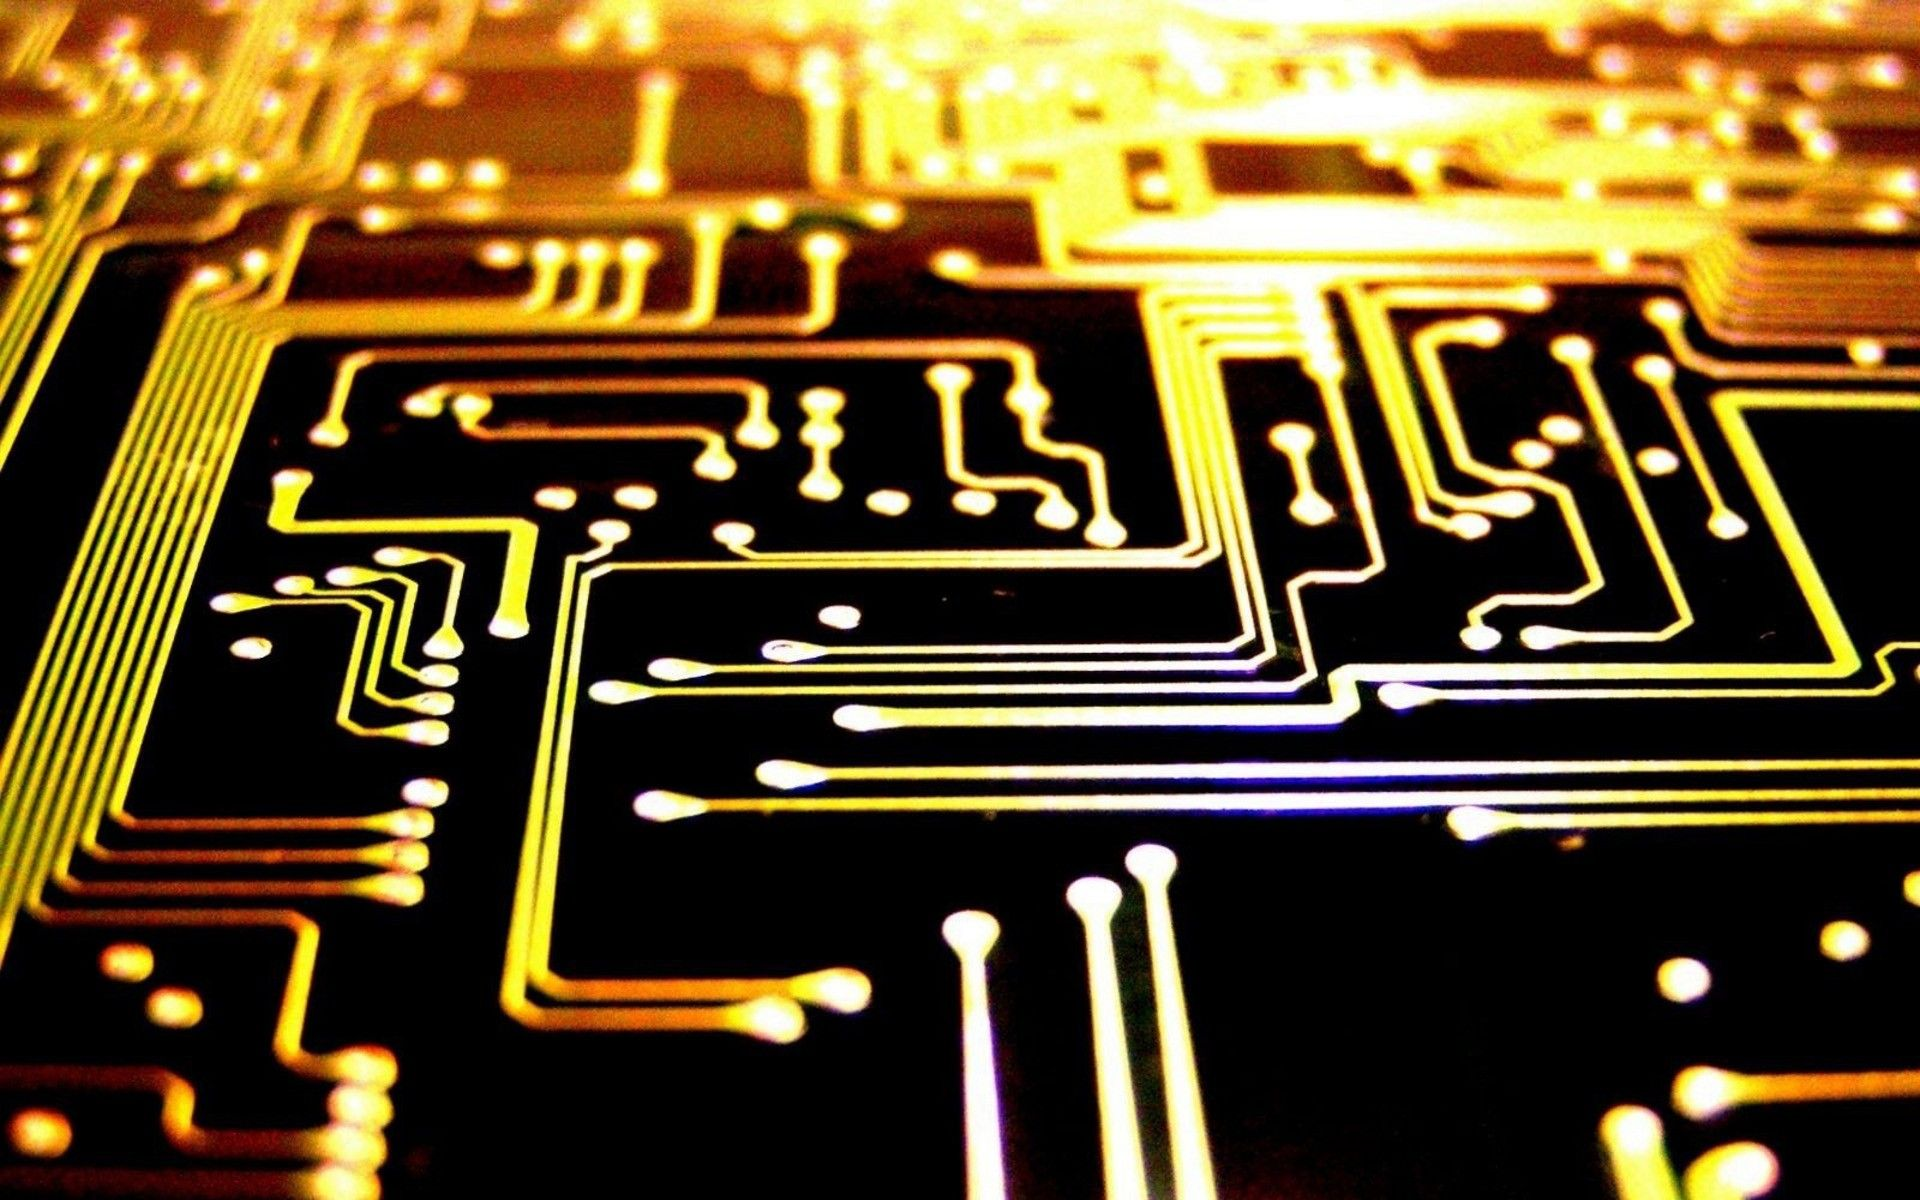 Printed Circuit Board Wallpaper Gstudio Group Boards Design Motherboard Dreamstime Pcb Laptop Electronic Asus Electric Razor Source 60 Best Free